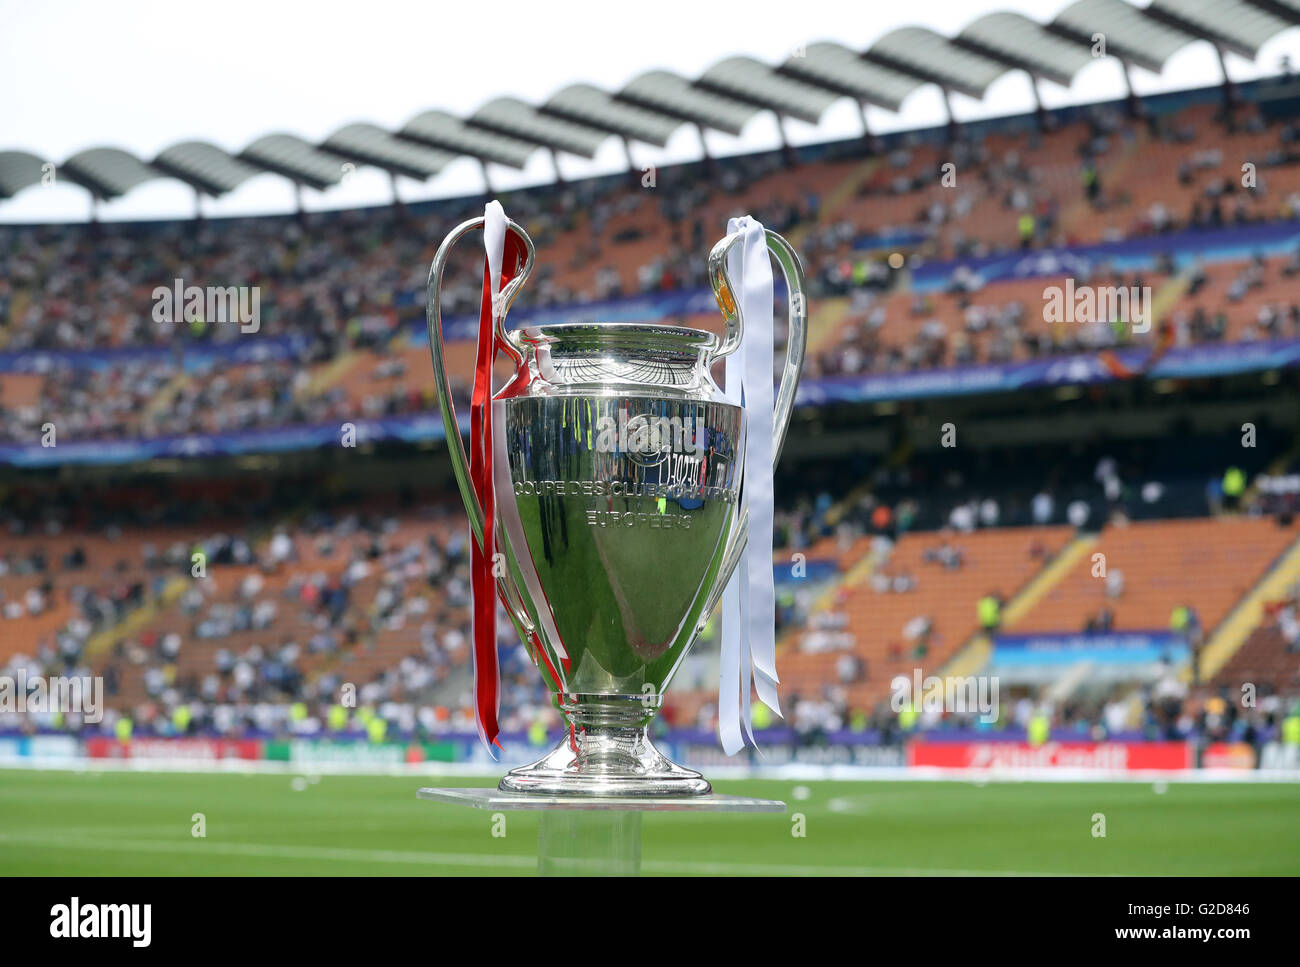 28th May 2016 The UEFA Champions League Trophy Is Seen On Display Before Final Between Real Madrid And Atletico At